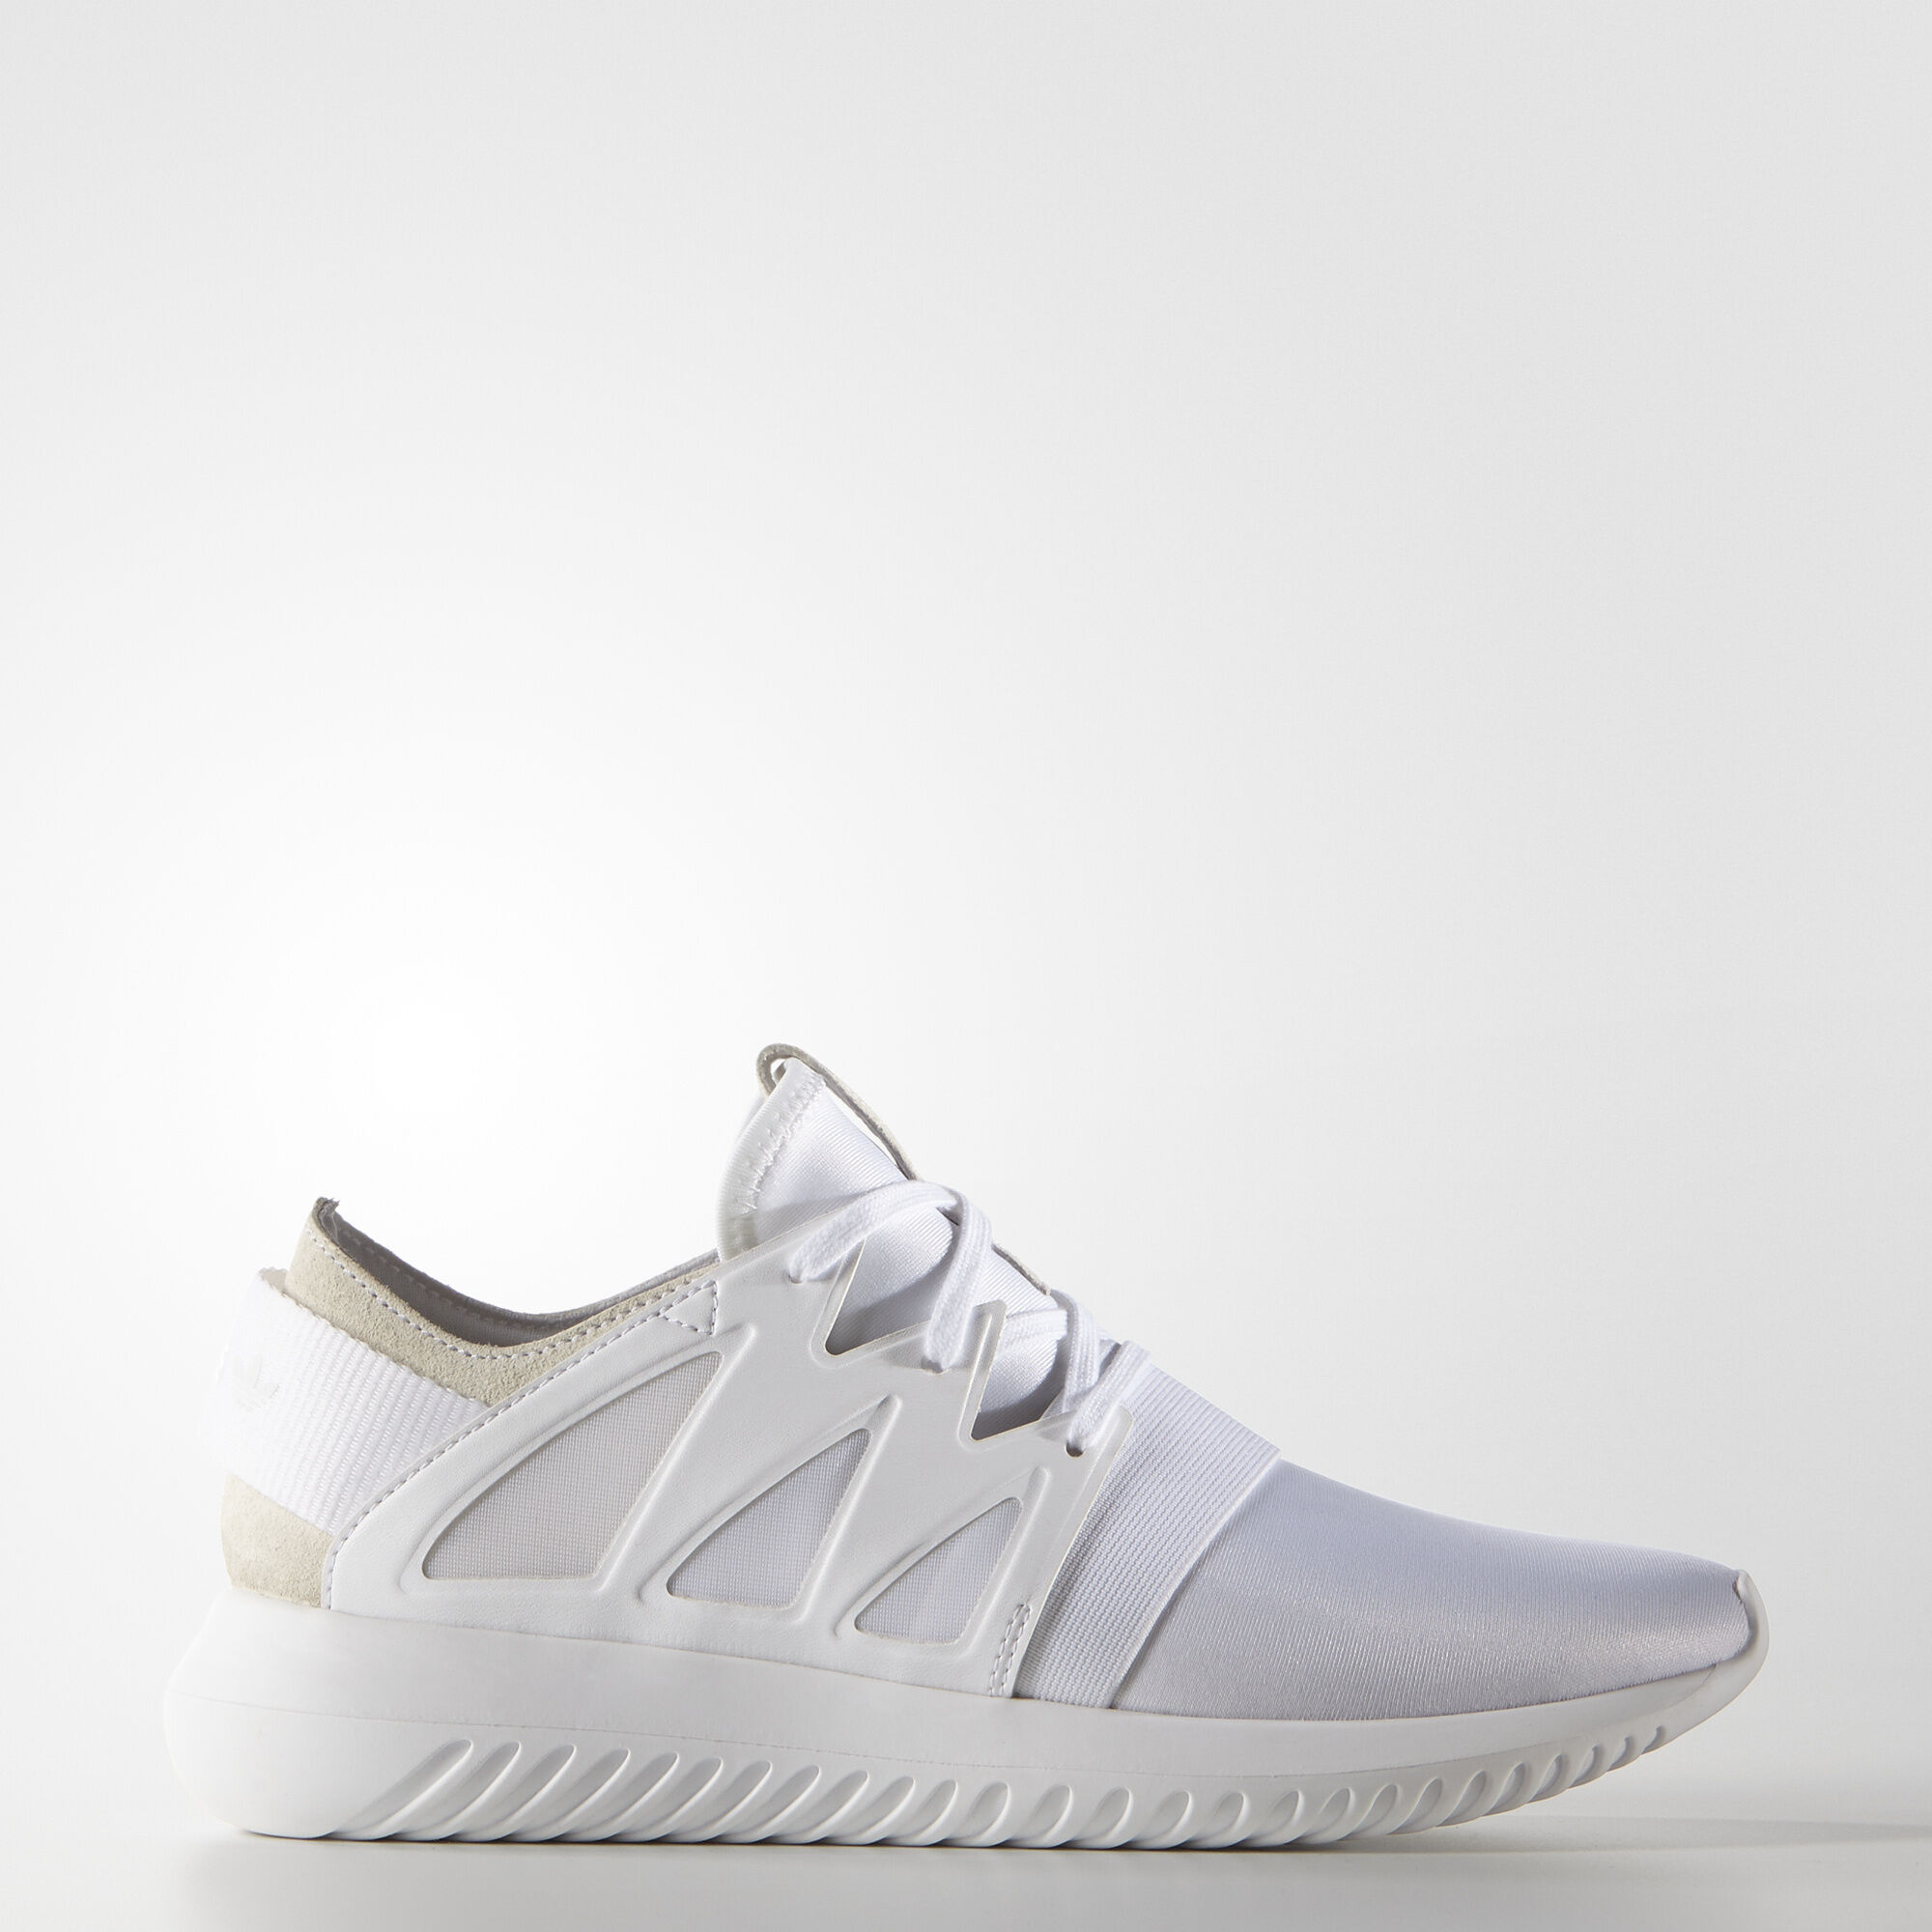 Adidas Originals WMNs Tubular Defiant 'Color Contrast' Pack